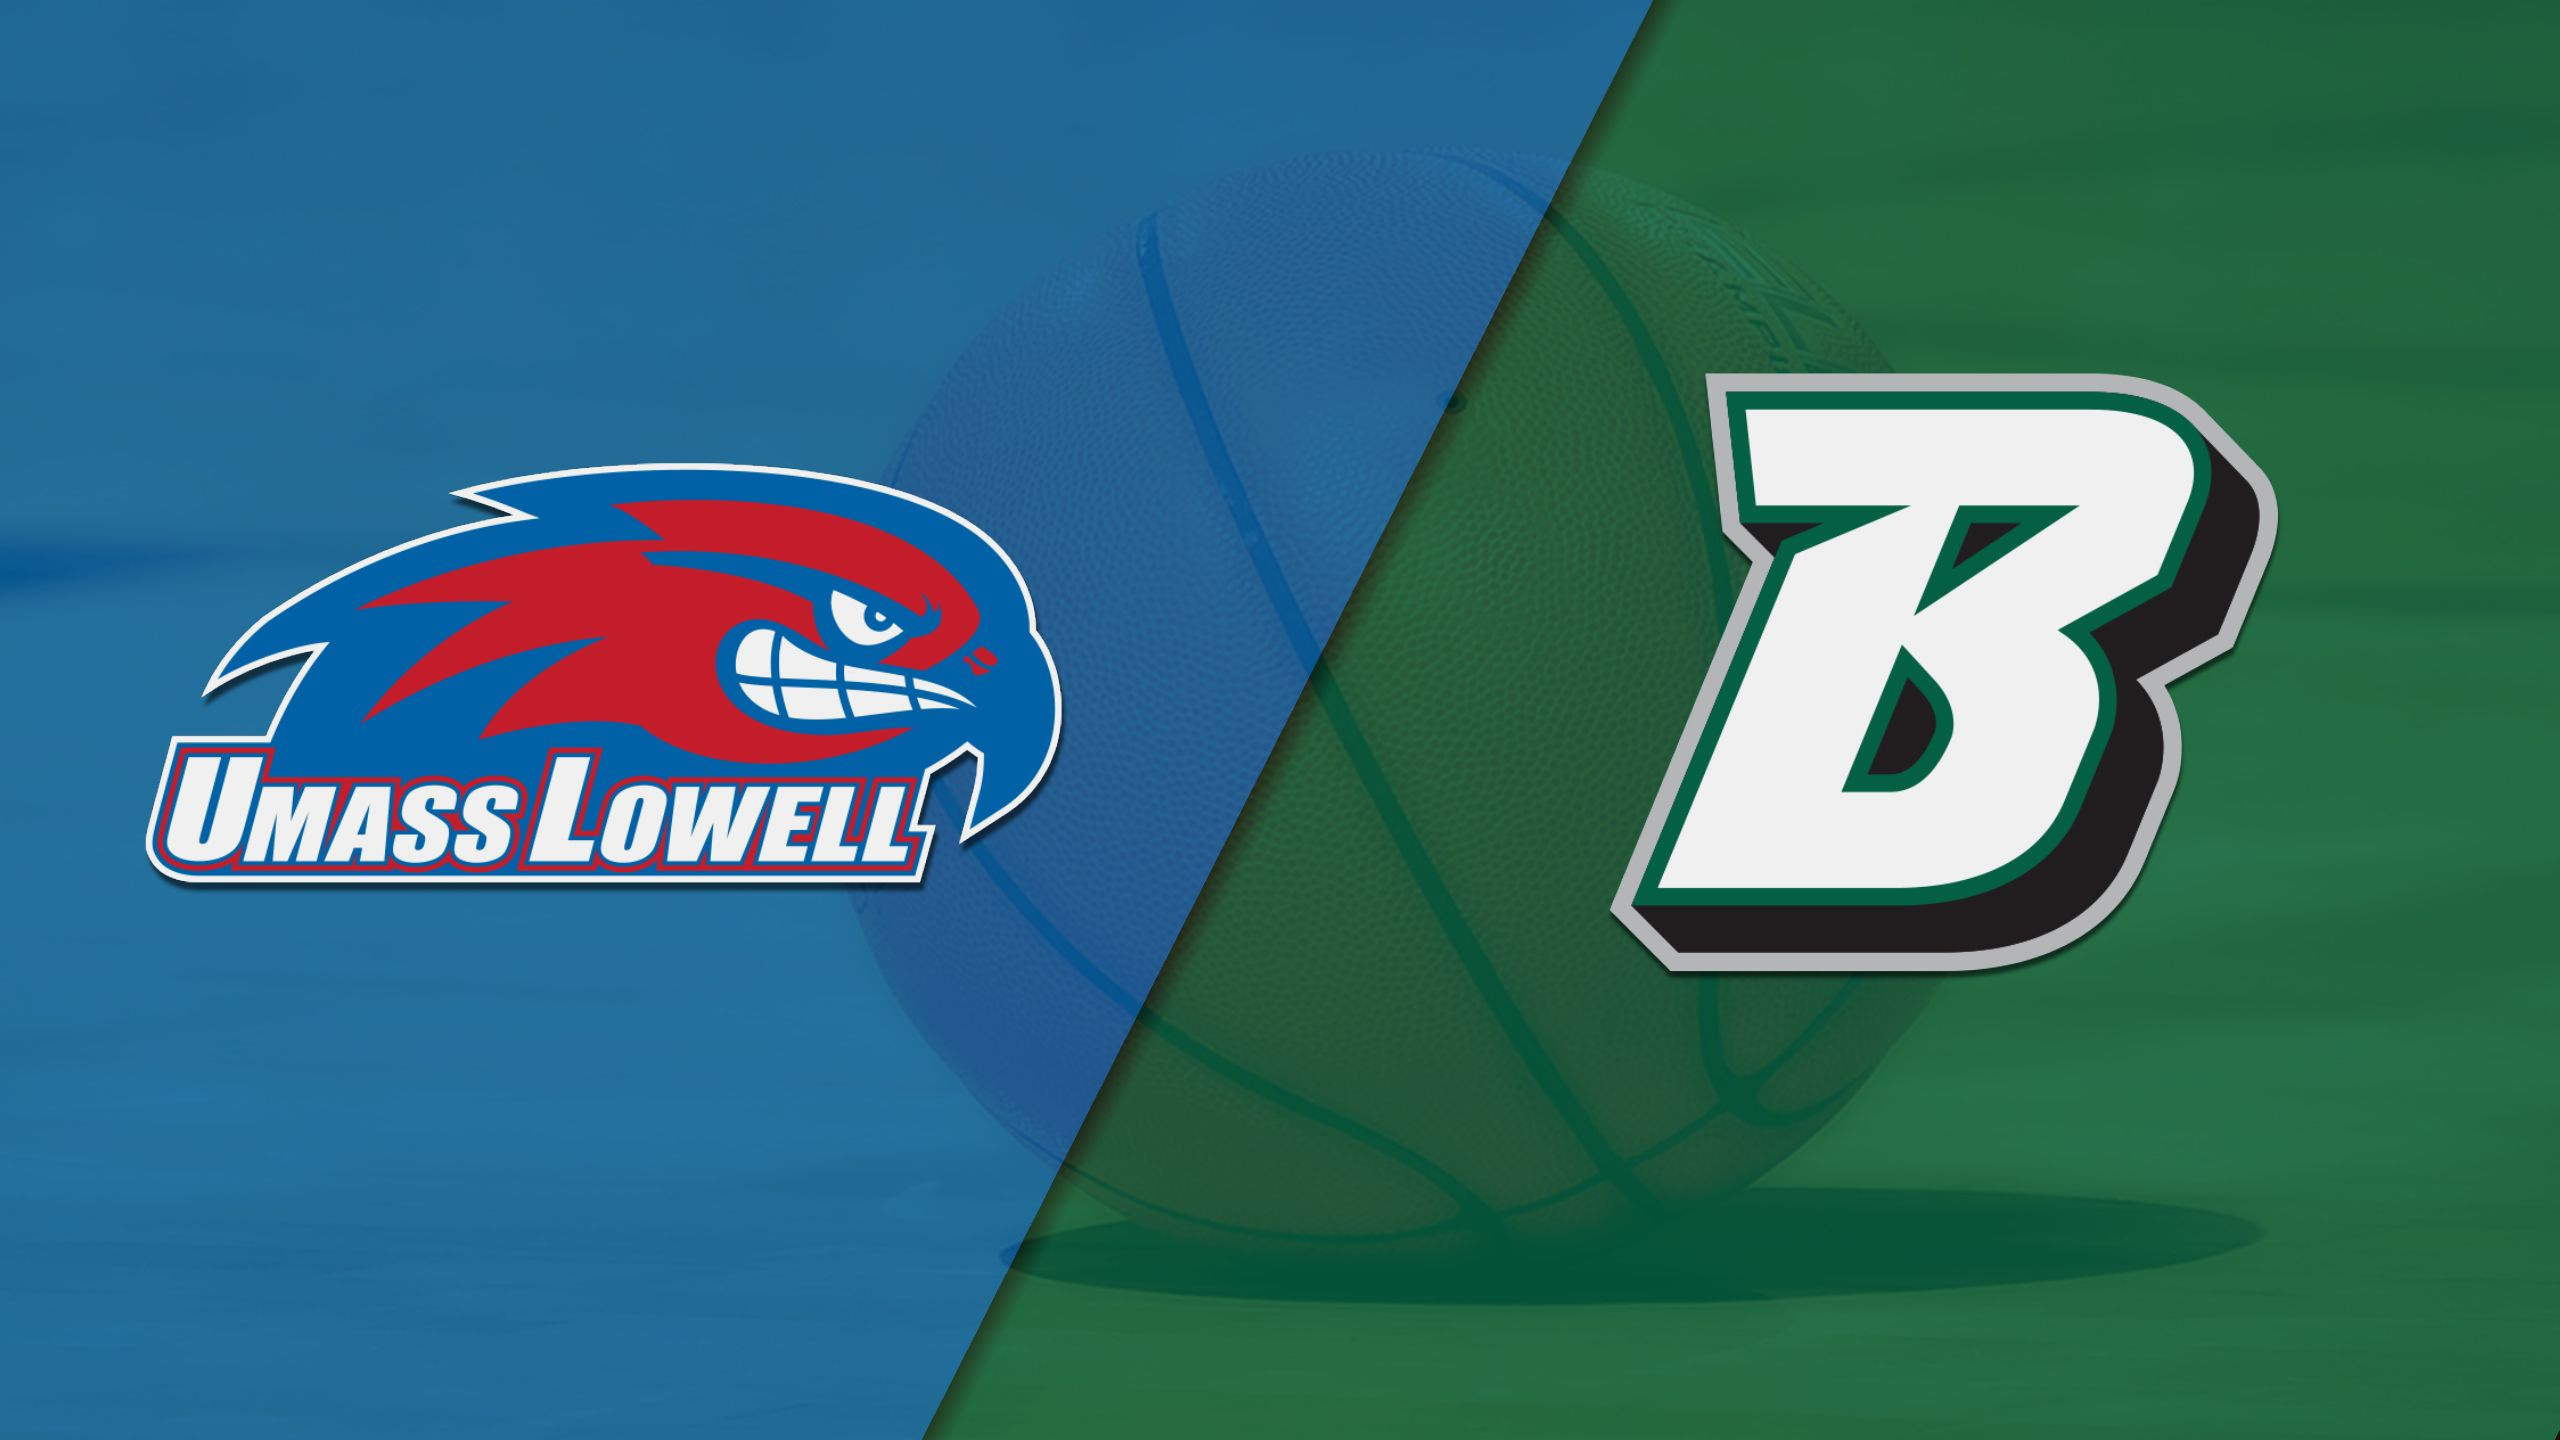 UMass Lowell vs. Binghamton (W Basketball)